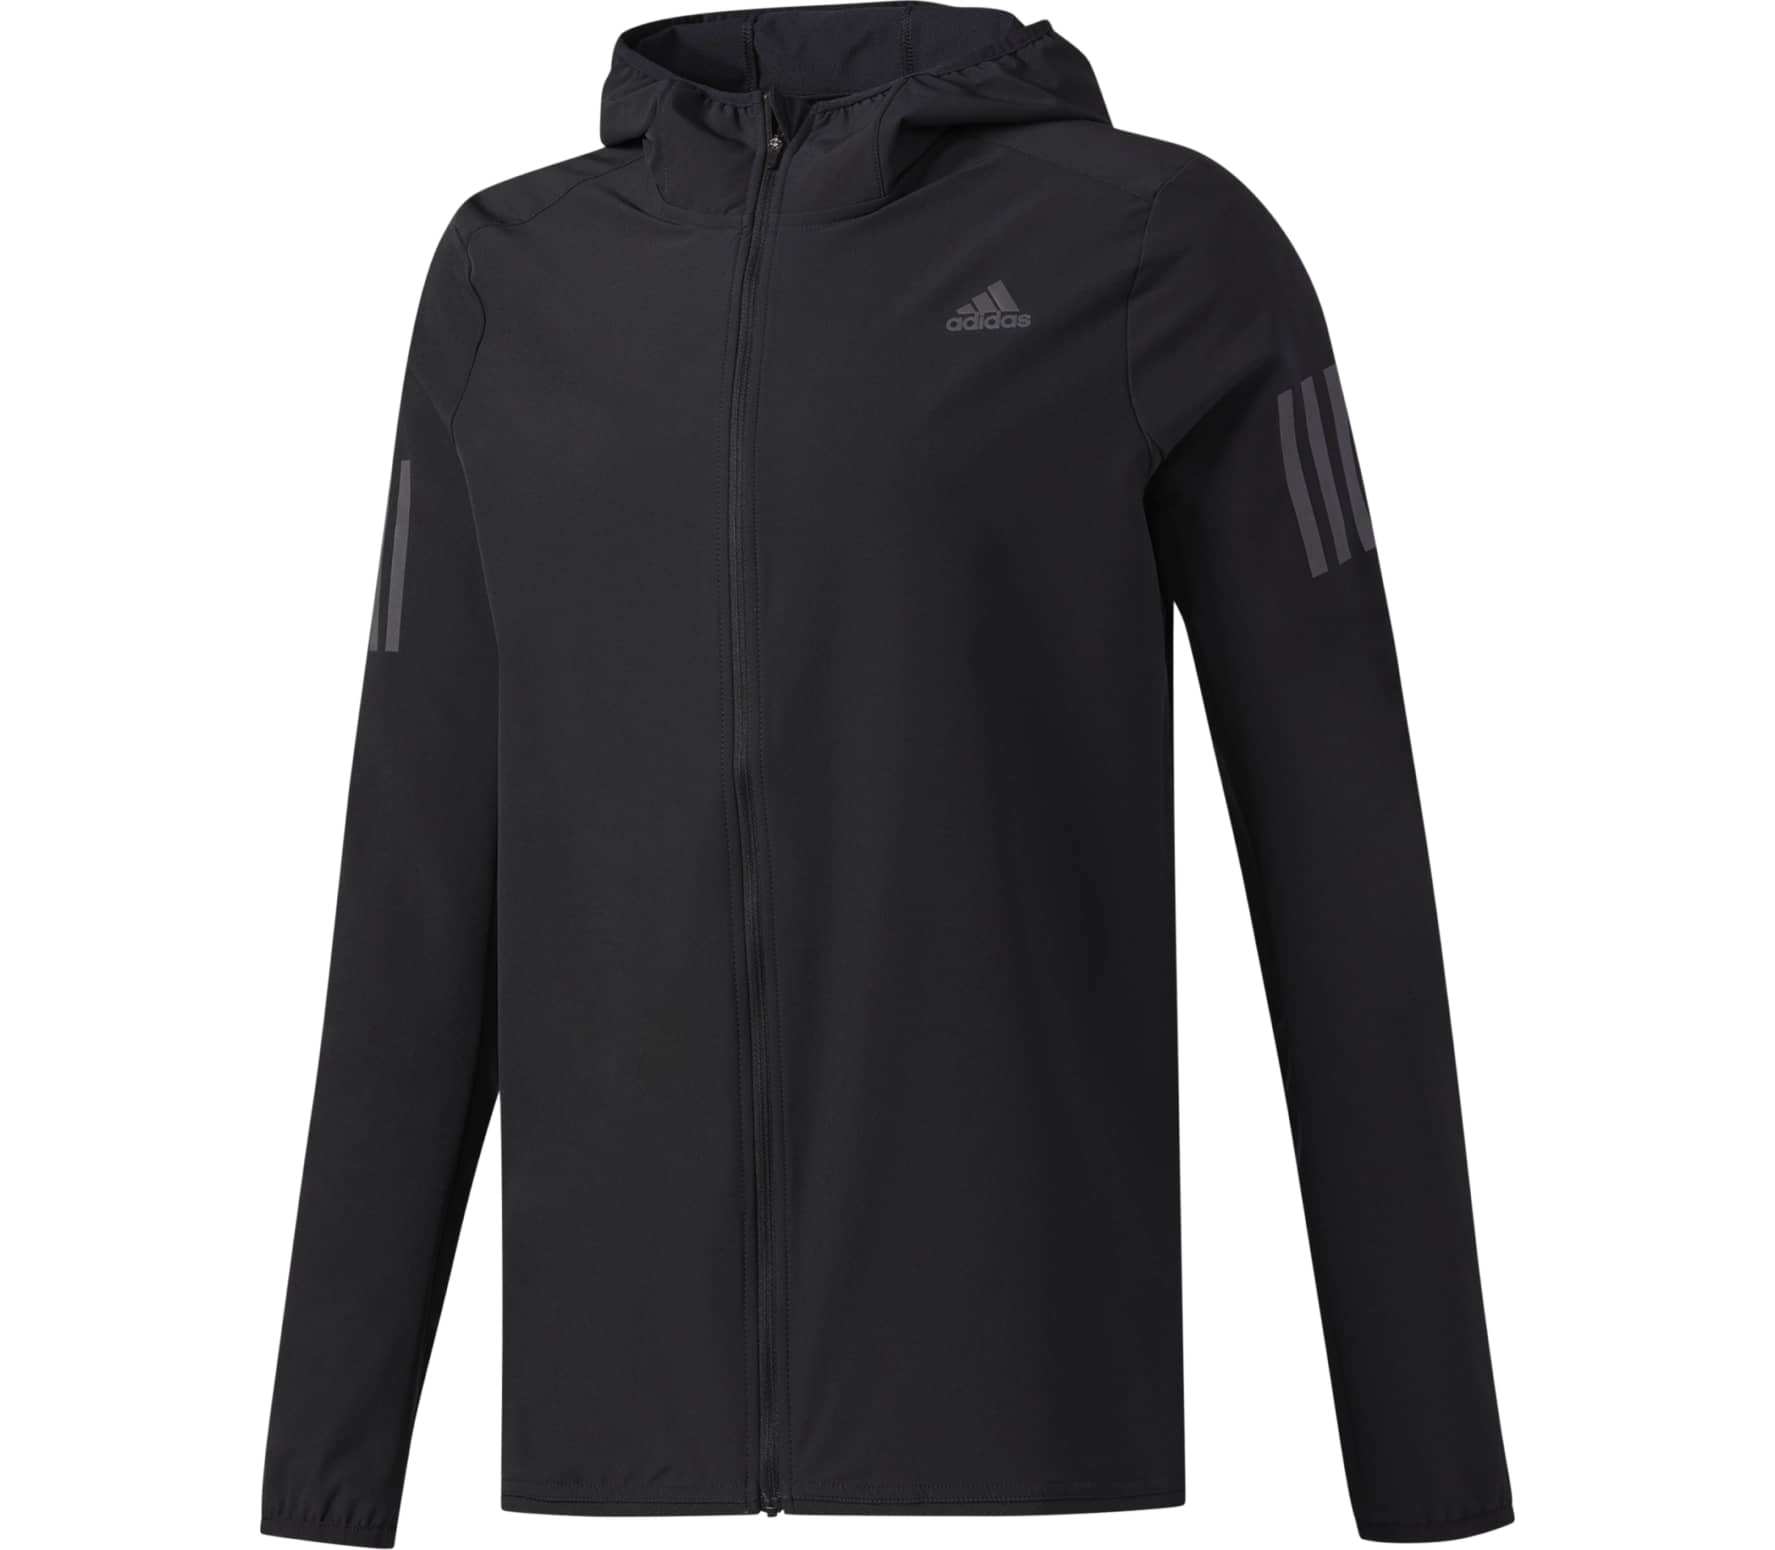 Adidas - Response Shell men's running jacket (black) - M thumbnail